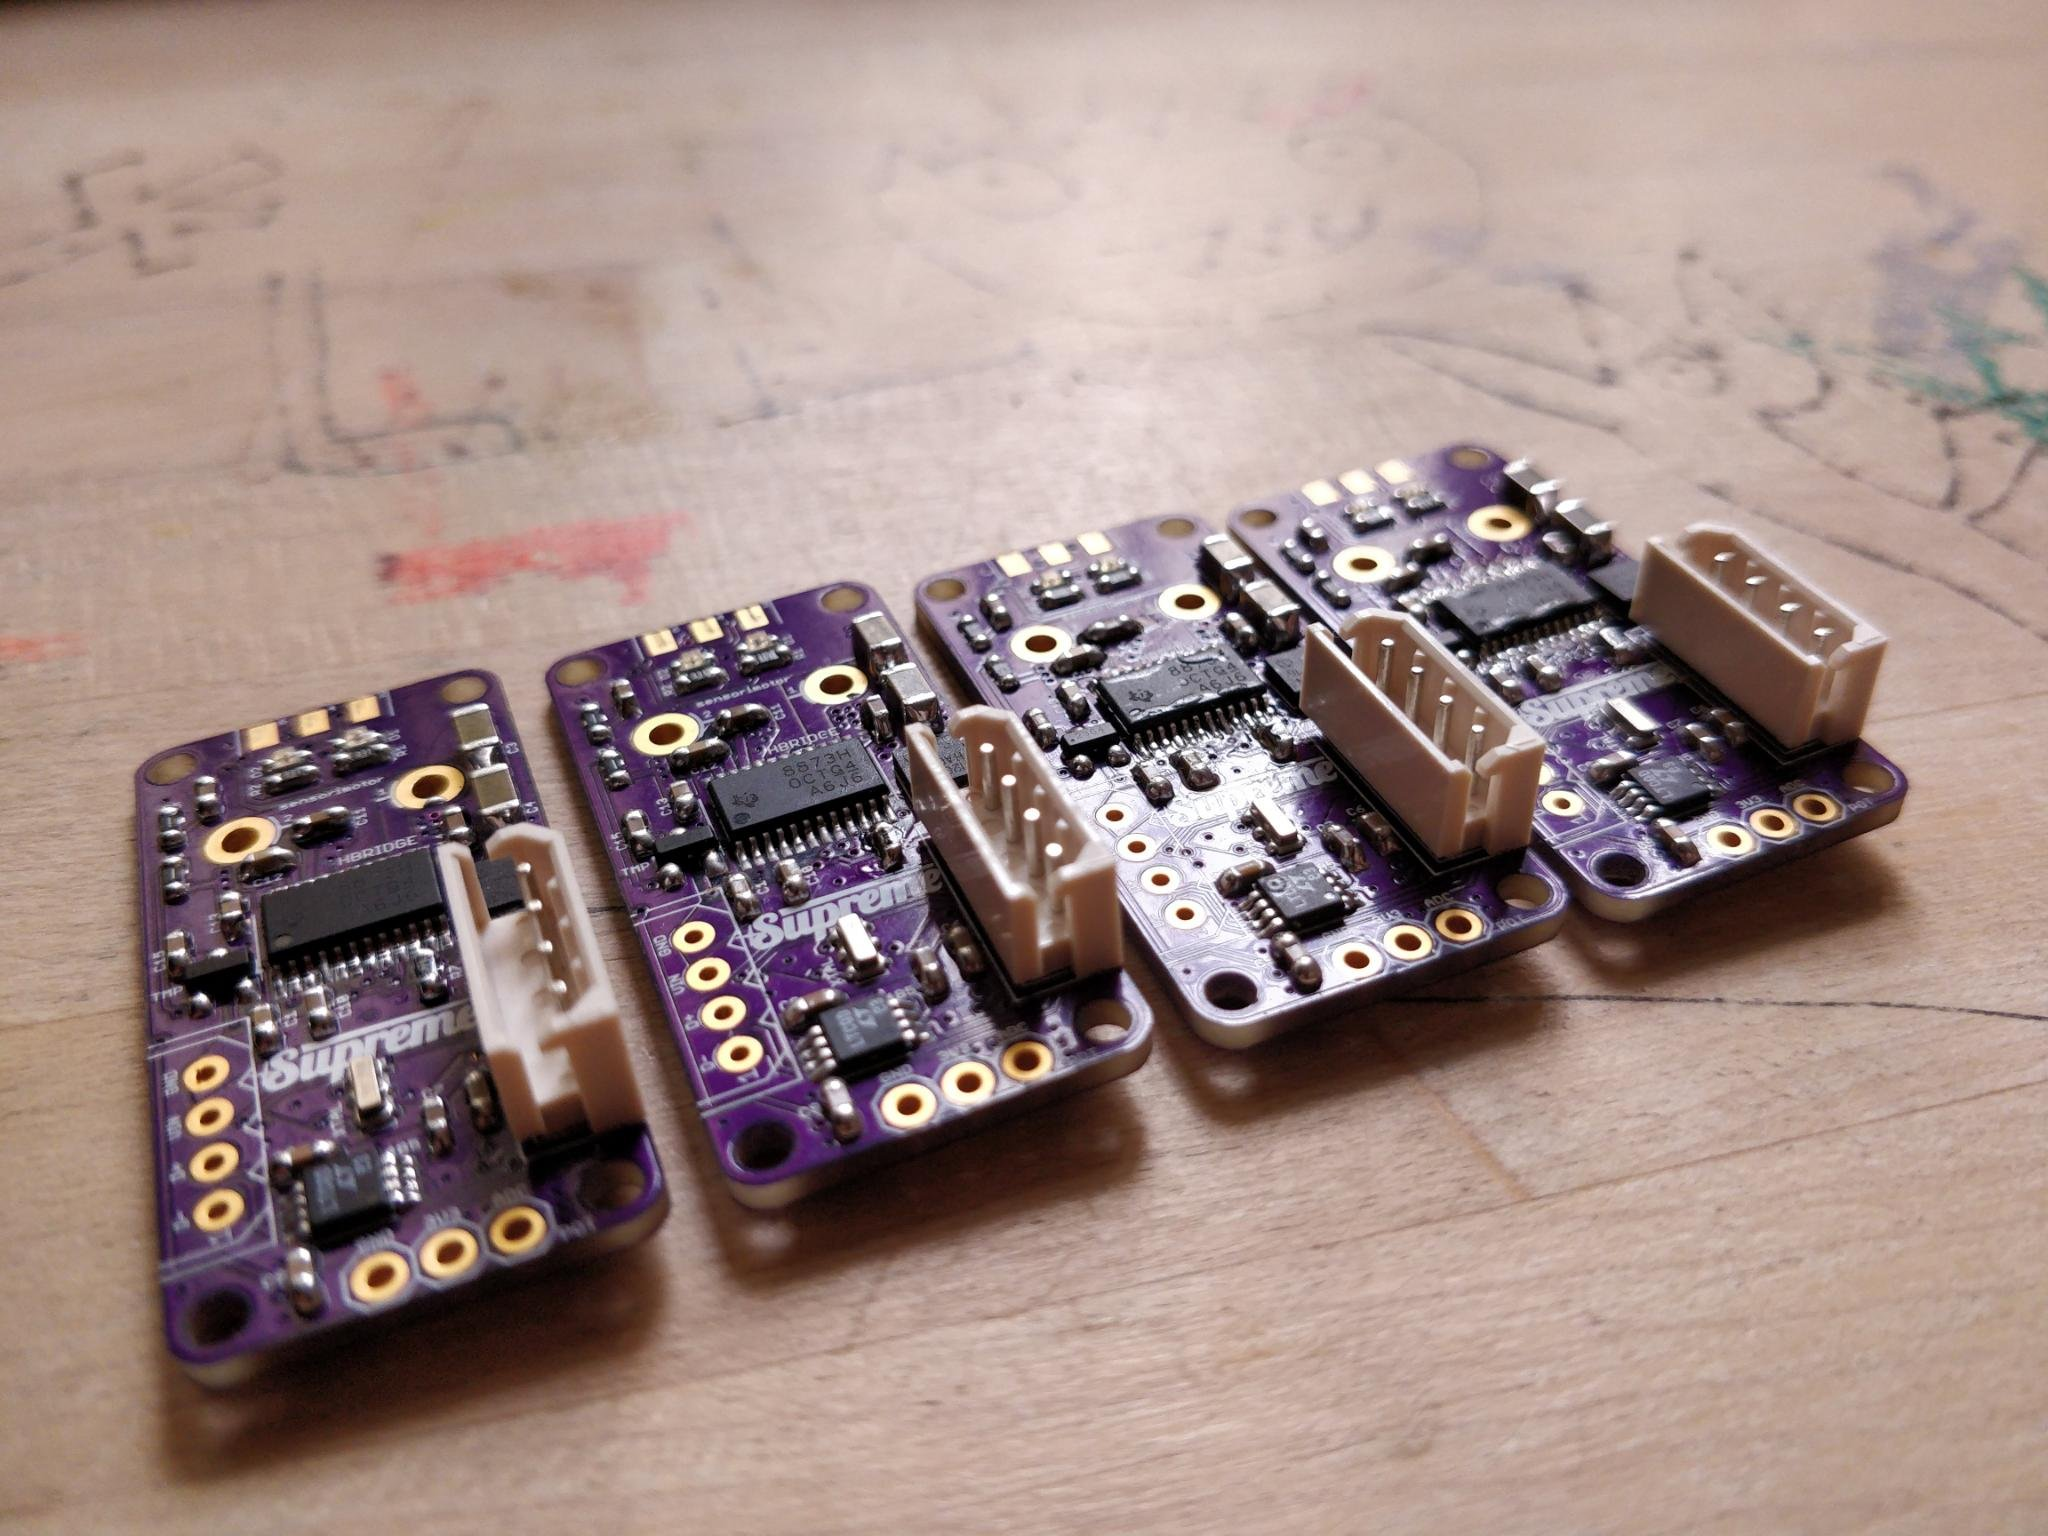 Multiple sensorimotor PCBs lined up for further processing